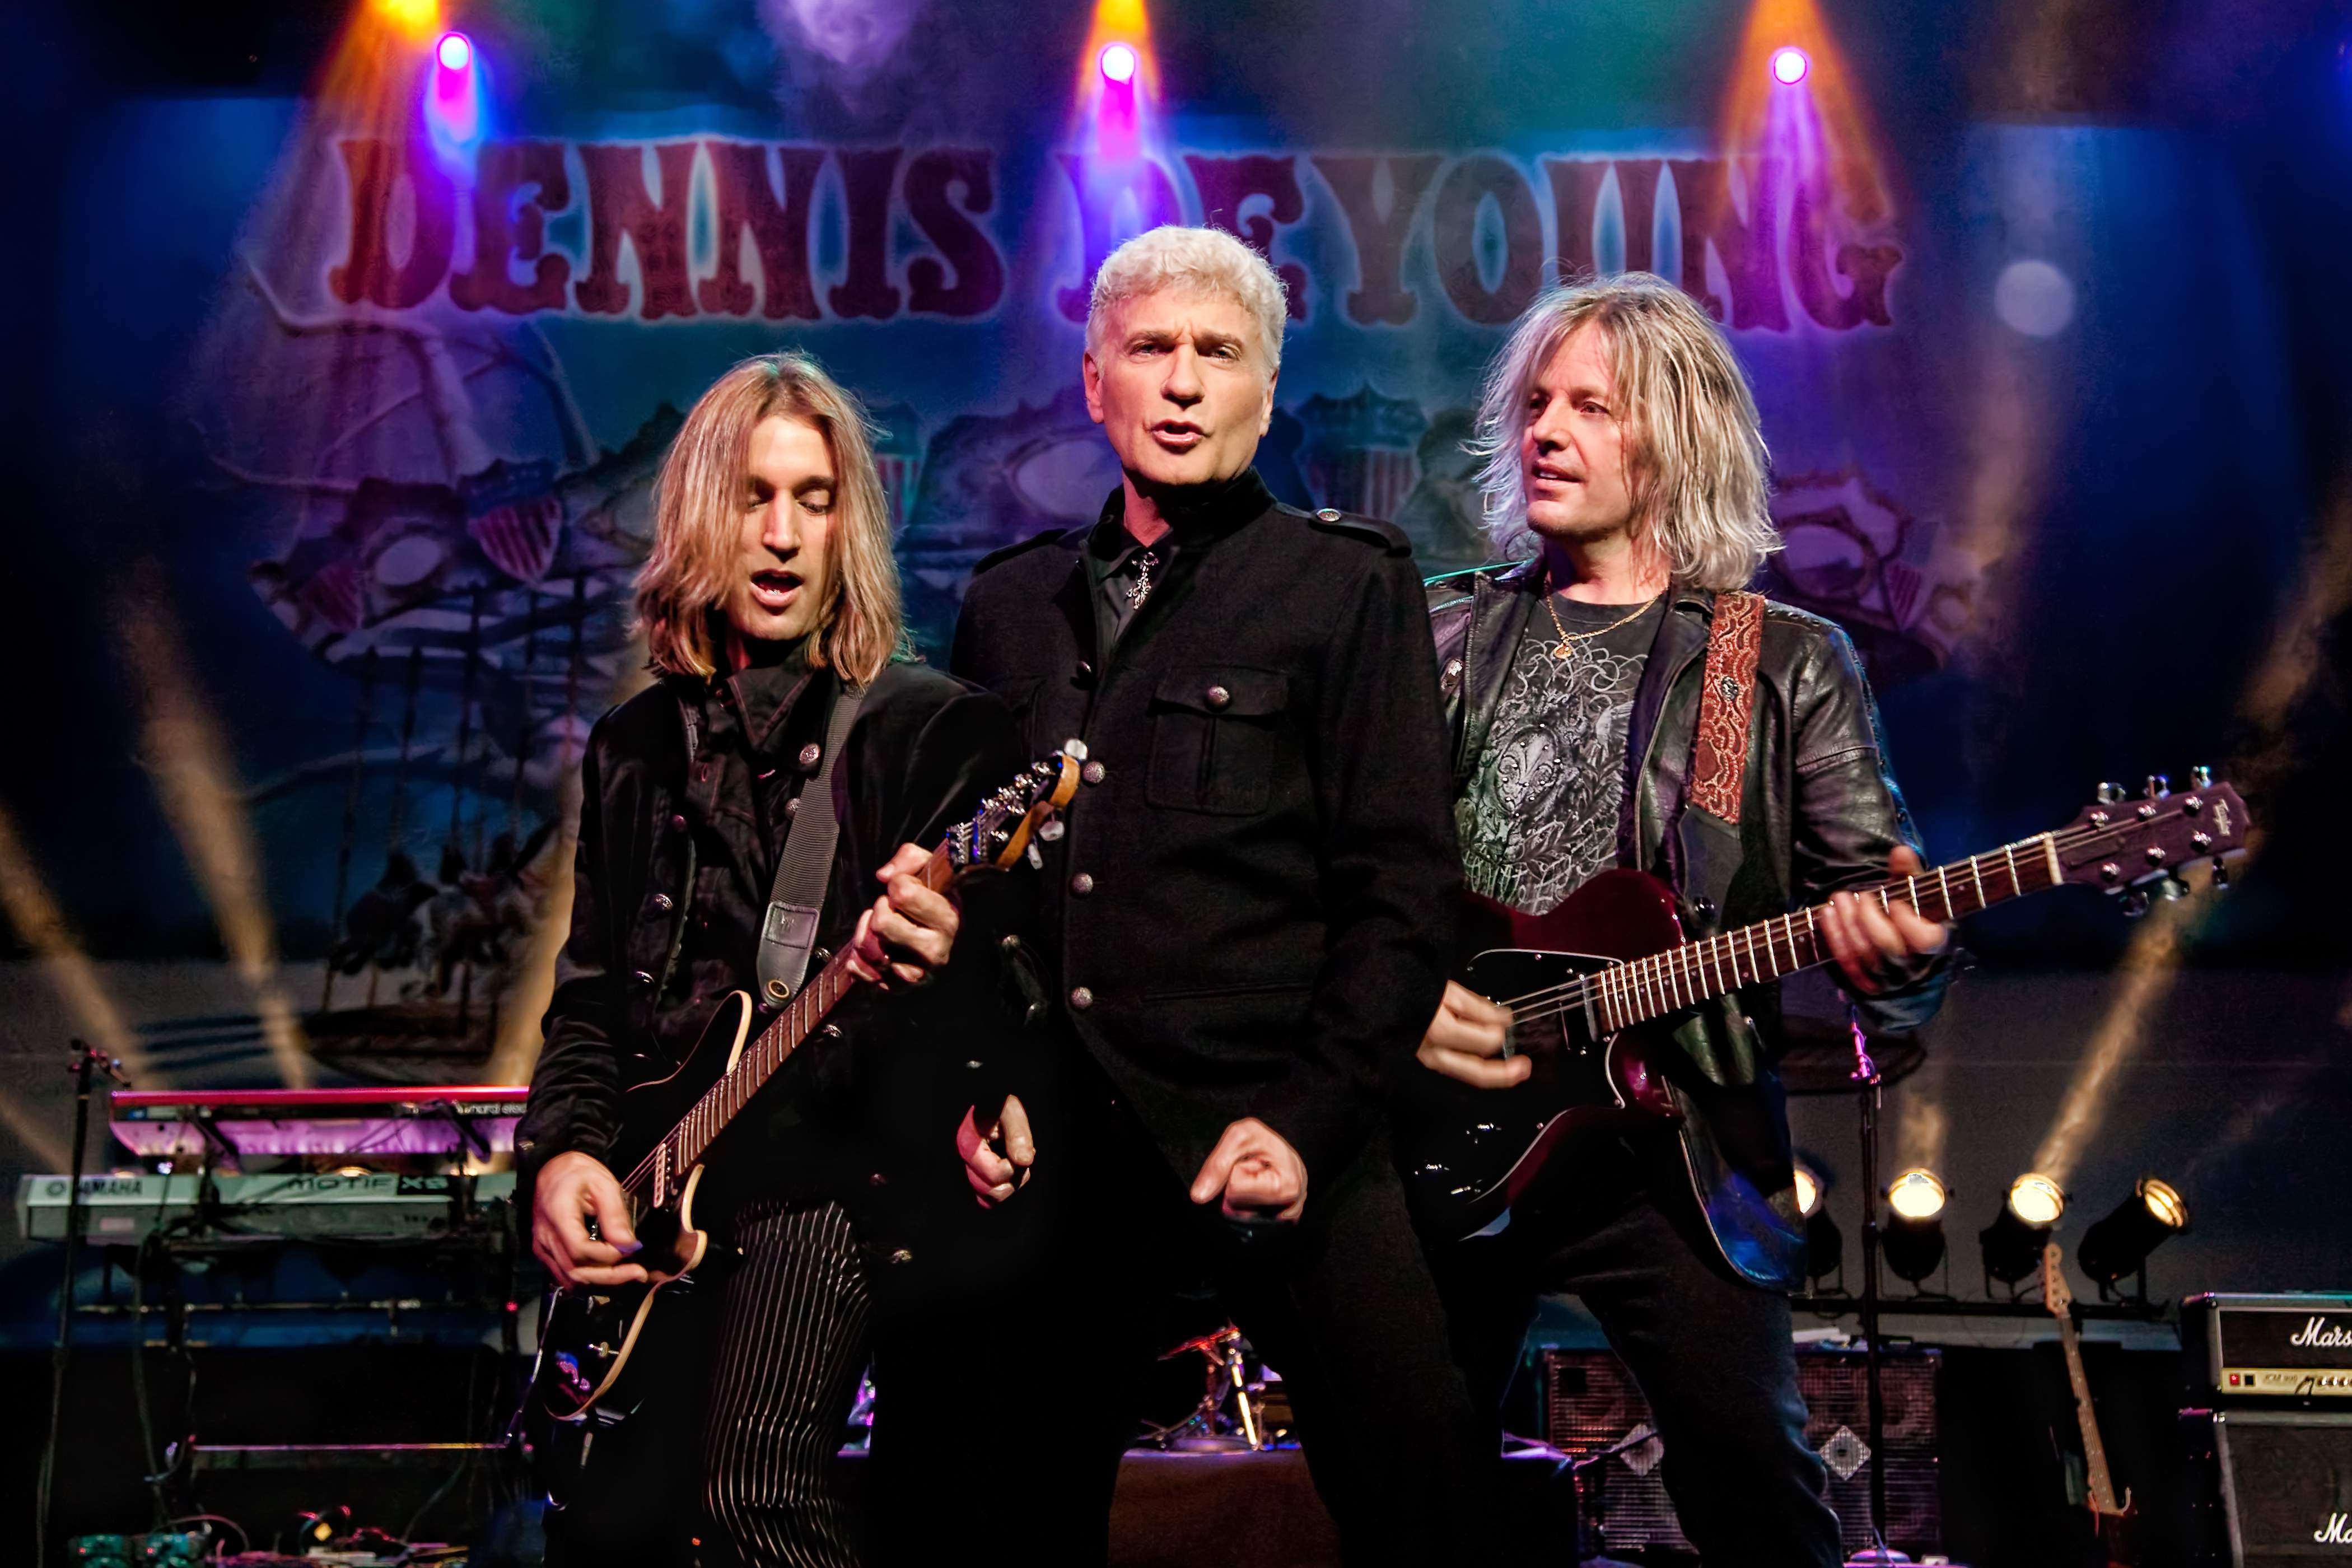 Dennis DeYoung: The Music of STYX will come to the Marion Cultural and Civic Center on July 29 as part of the Will Rock For Food program, sponsored by the Marion Ministerial Alliance. The night will also feature a silent auction.